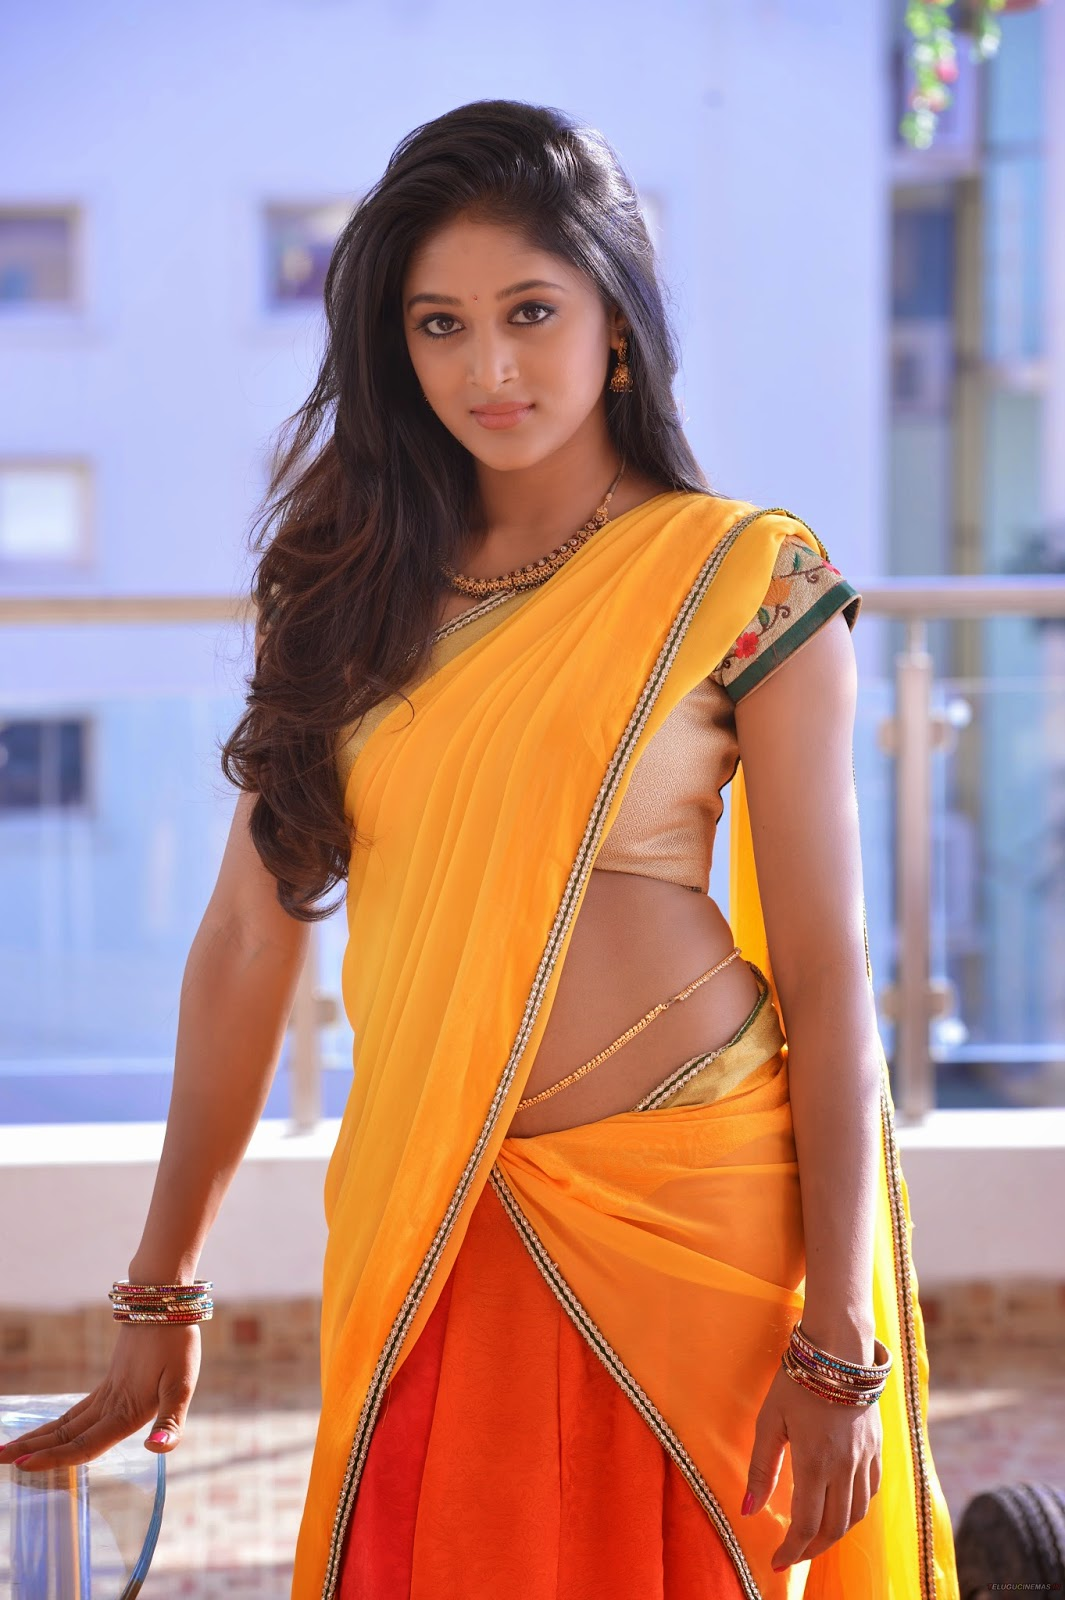 Bollywood Actress Images And Hd Wallpapers Actress Sushma